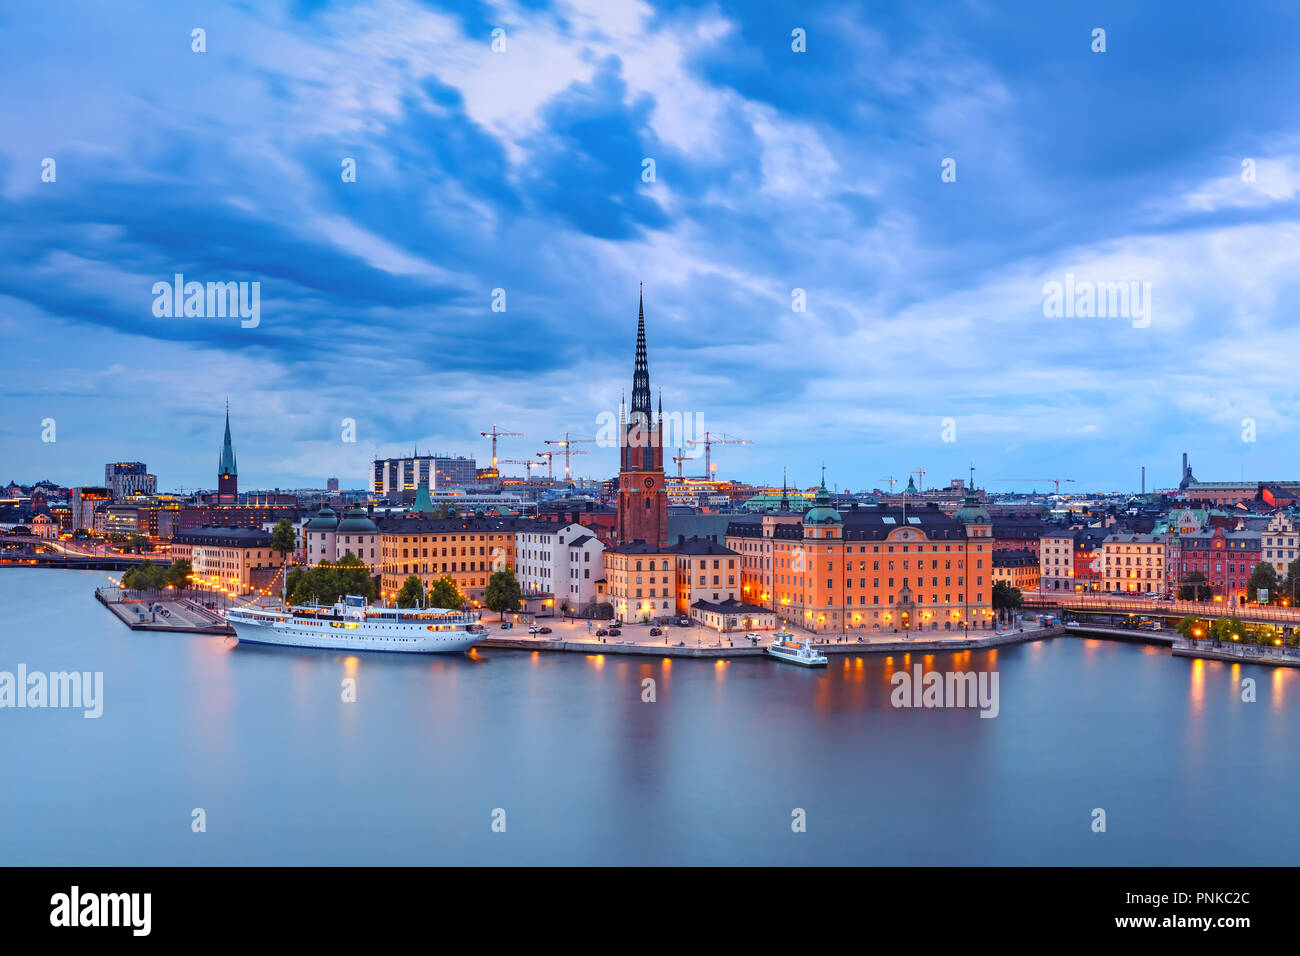 Scenic aerial night view of Riddarholmen, Gamla Stan, in the Old Town in Stockholm, capital of Sweden Stock Photo